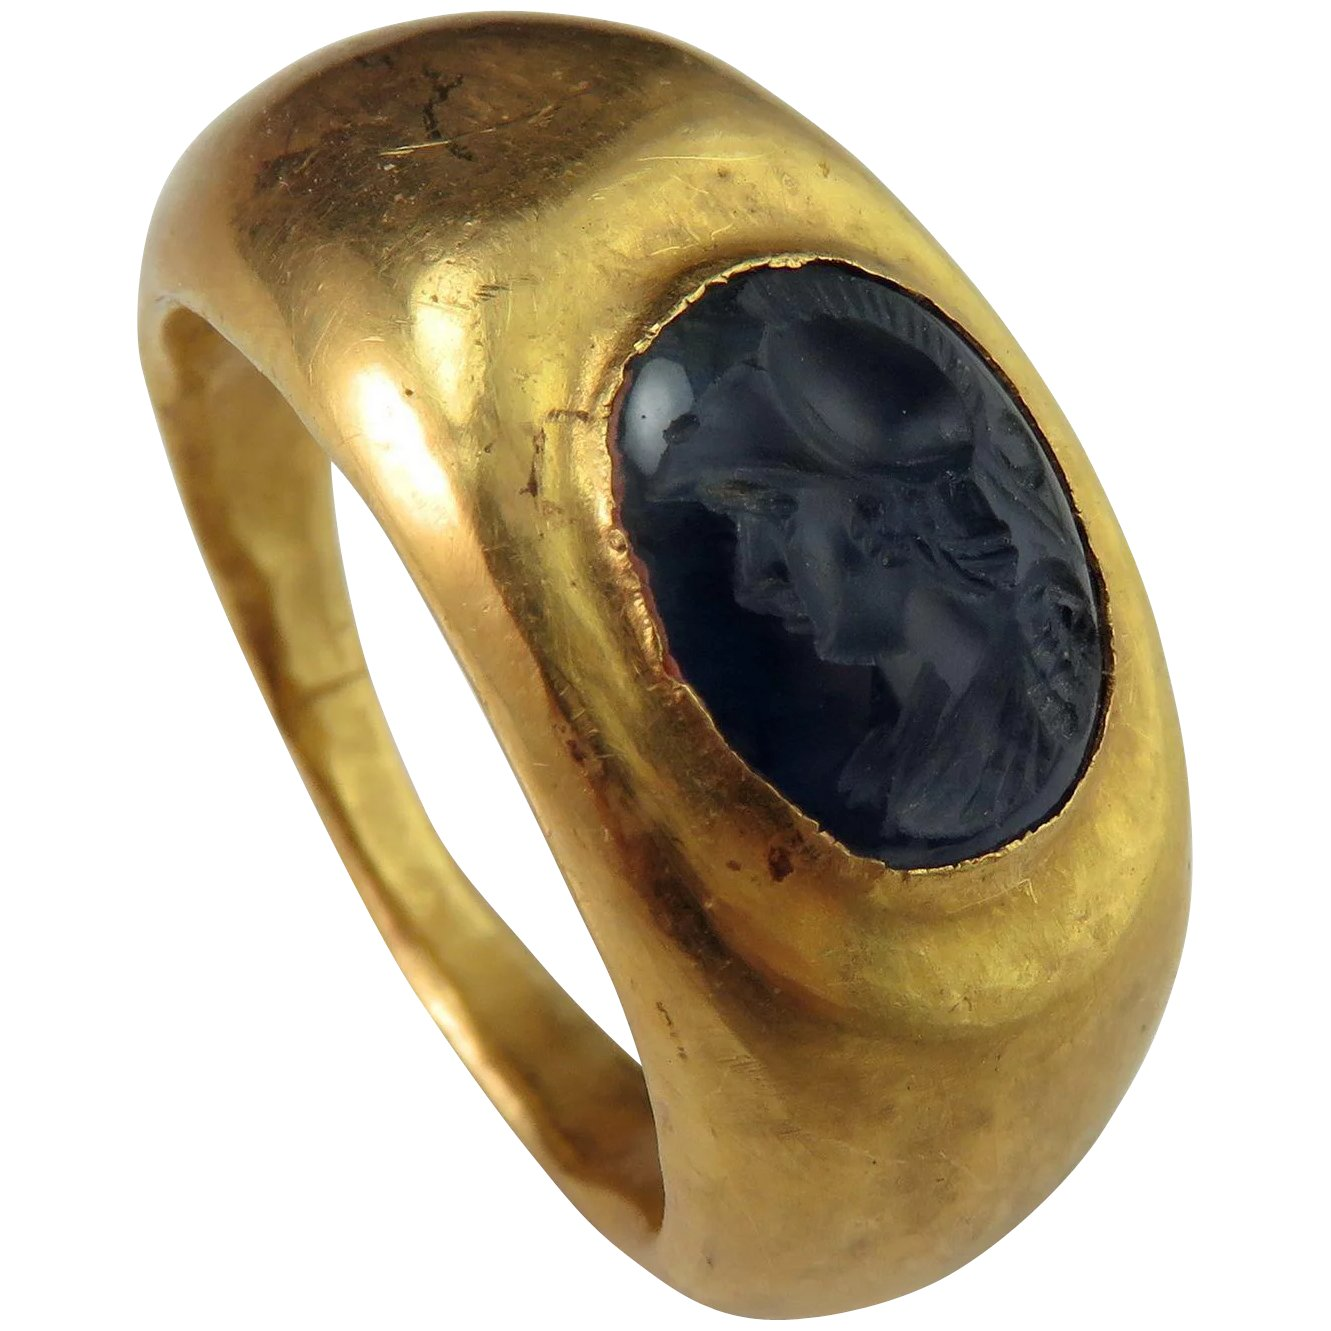 Ancient Roman Rings ancient roman sapphire intaglio 22k gold signet ring circa 2nd c ad antique  intaglio gold signet ring antique signet gold ring ancient greek roman